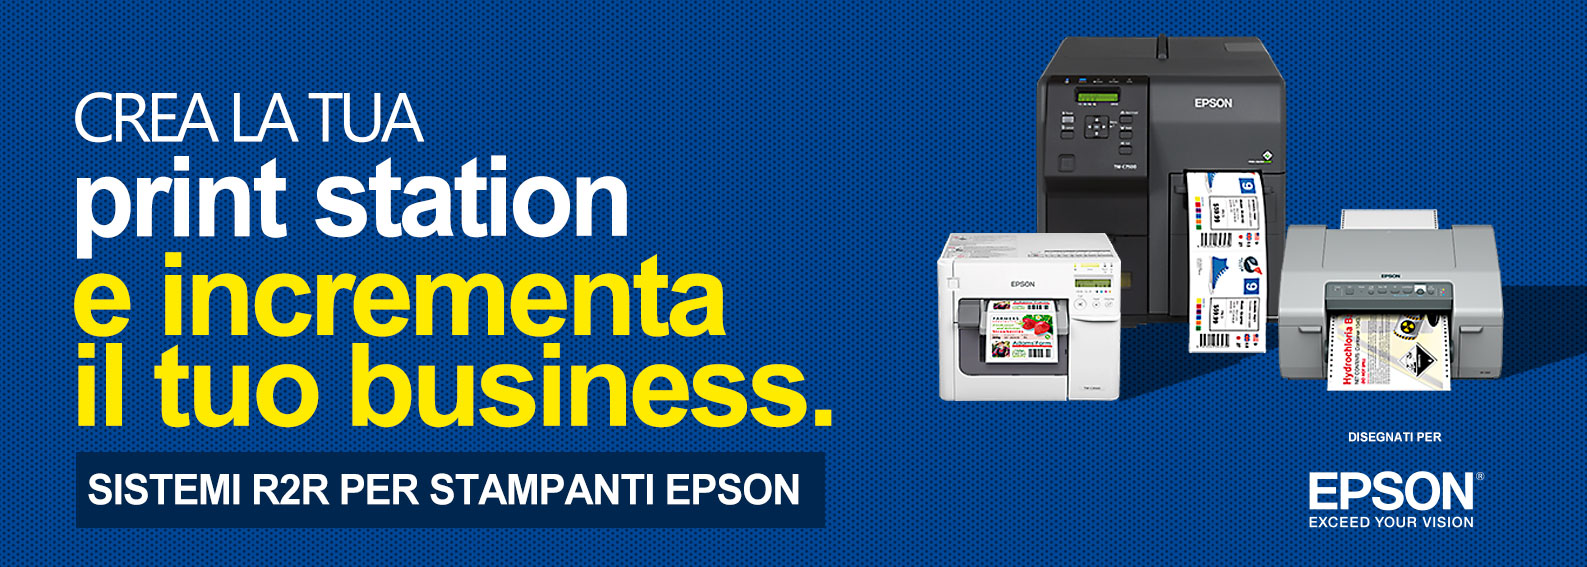 DPR designed for Epson